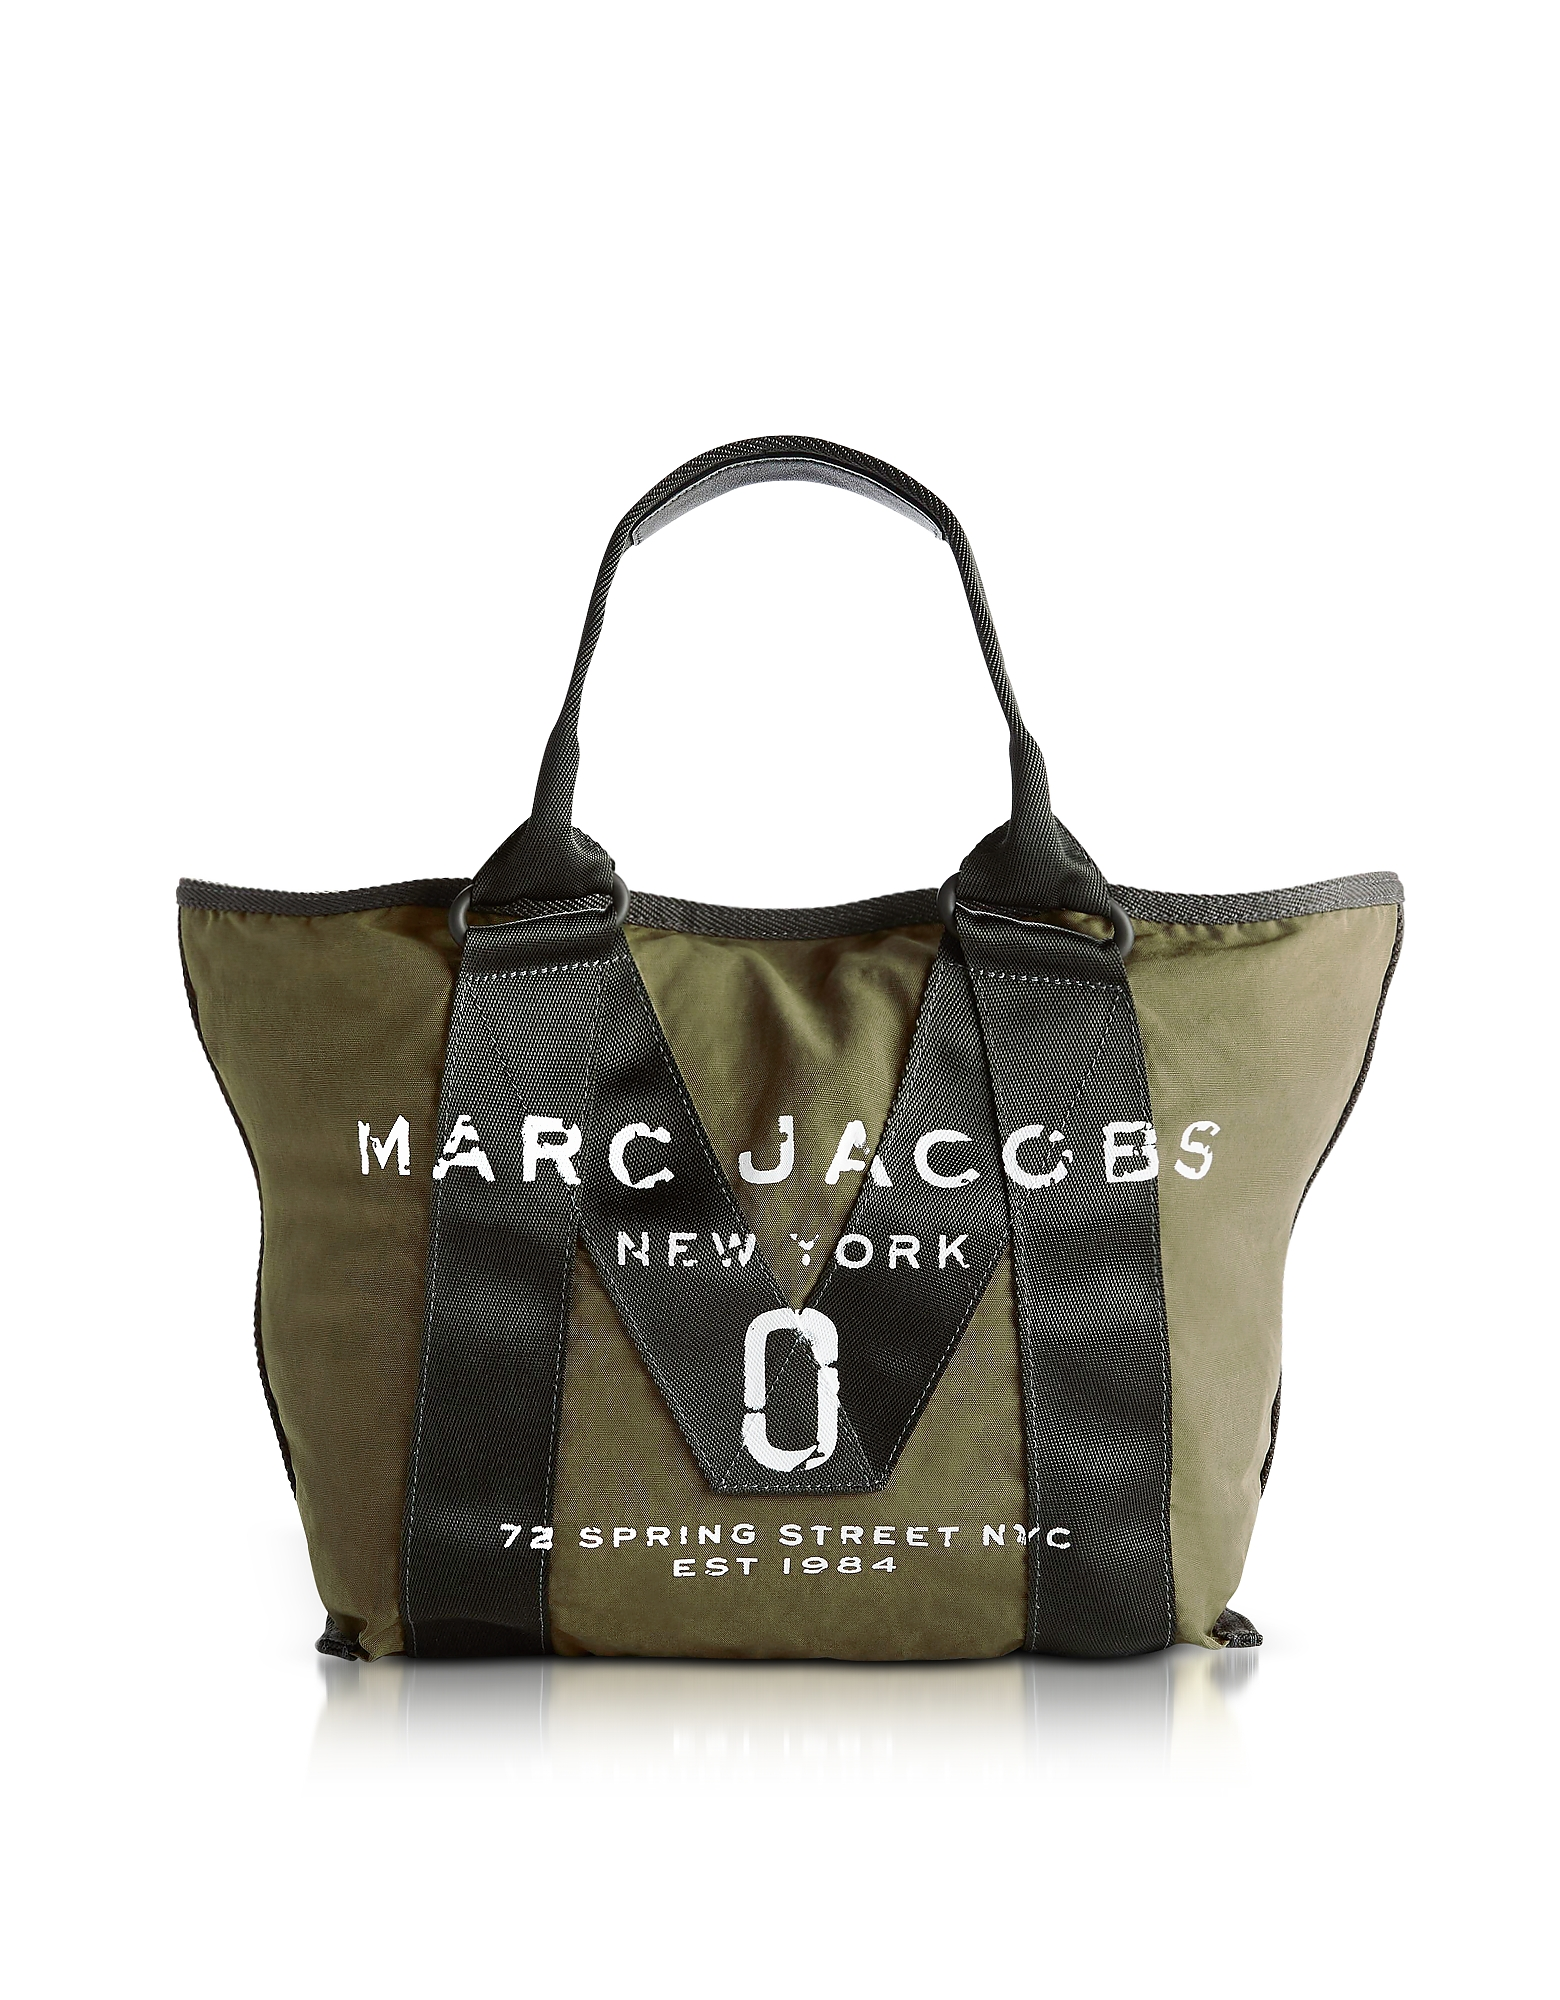 marc jacobs female marc jacobs designer handbags new logo army green cotton tote